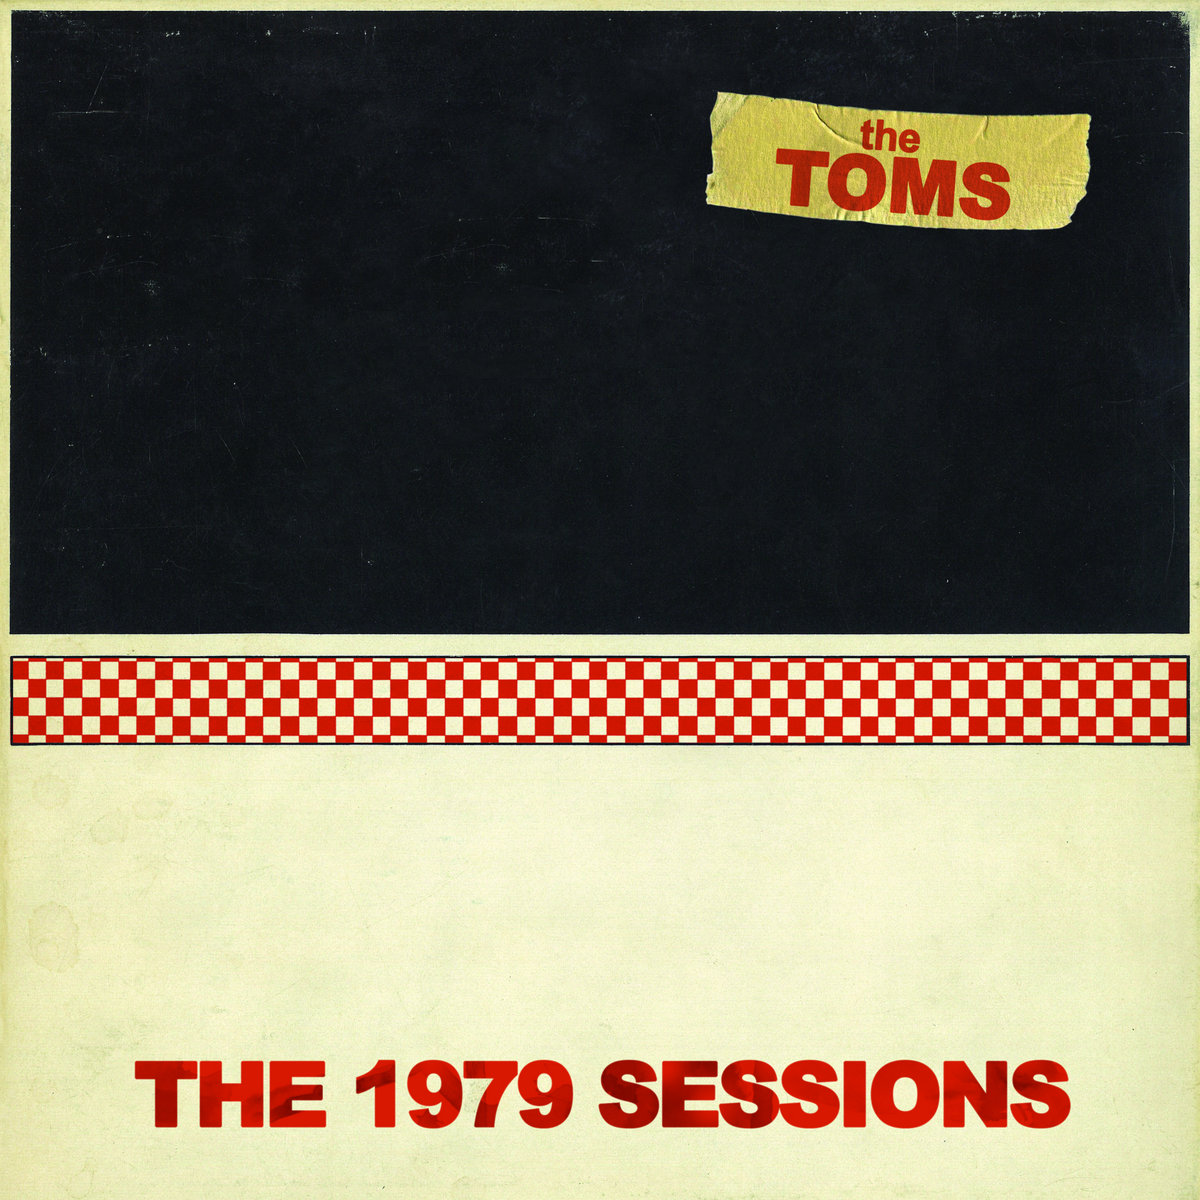 The Toms - The 1979 Sessions LP